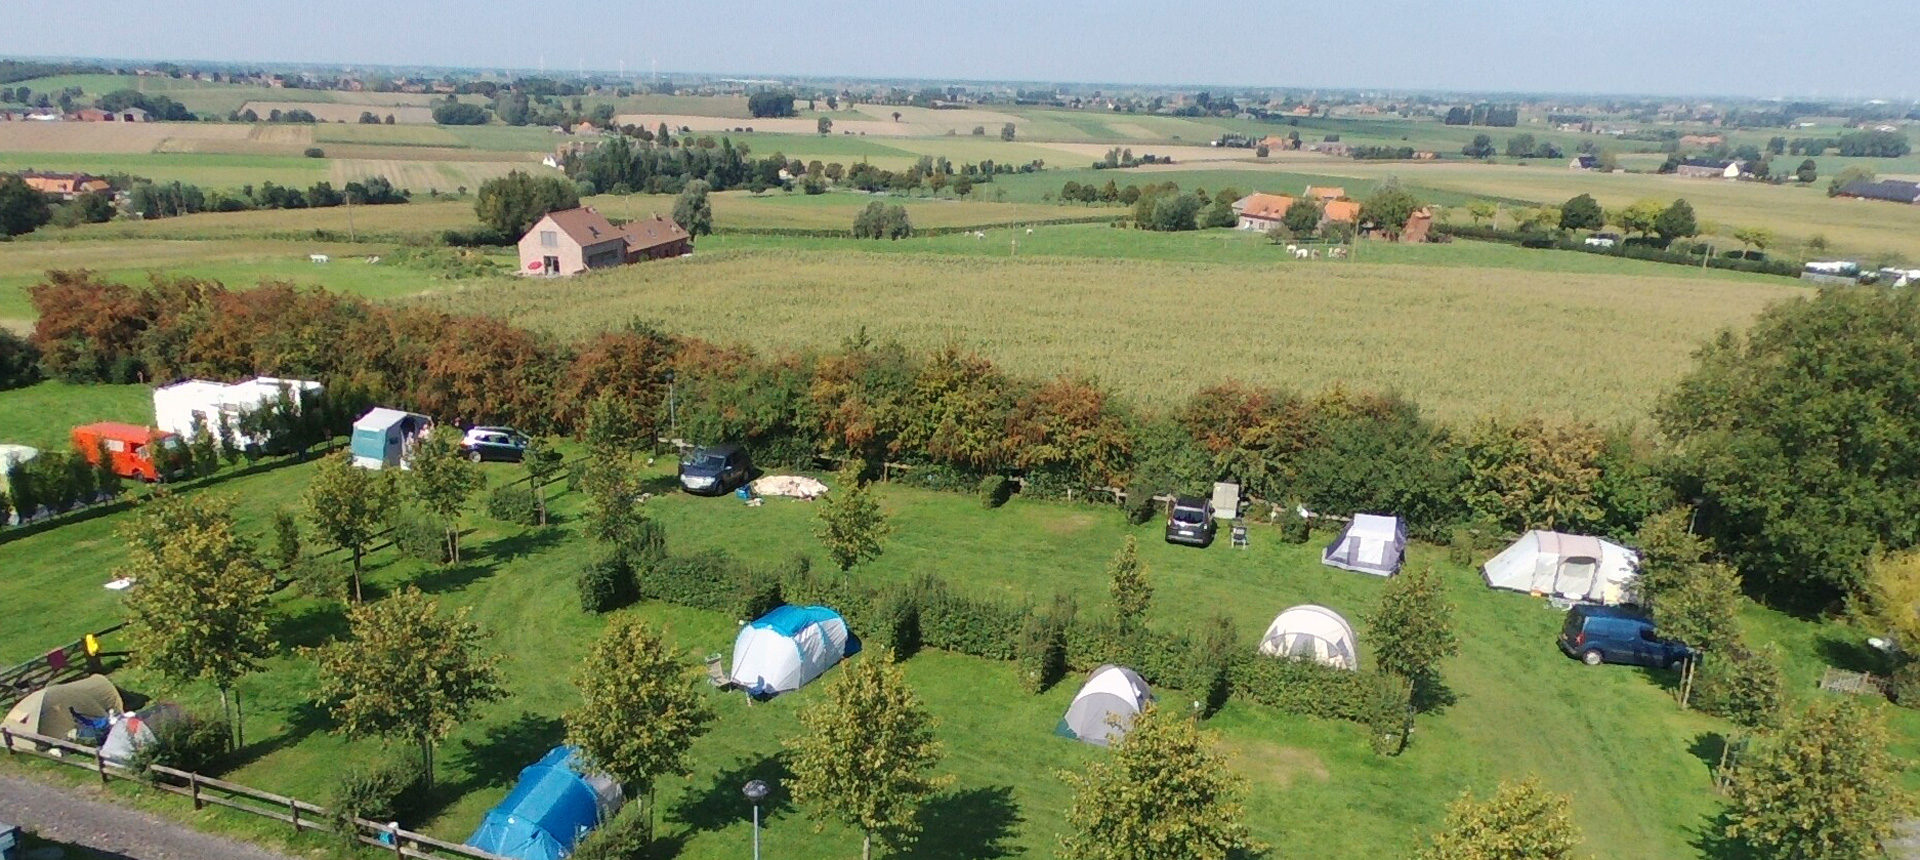 Short stay - Camping Ypra